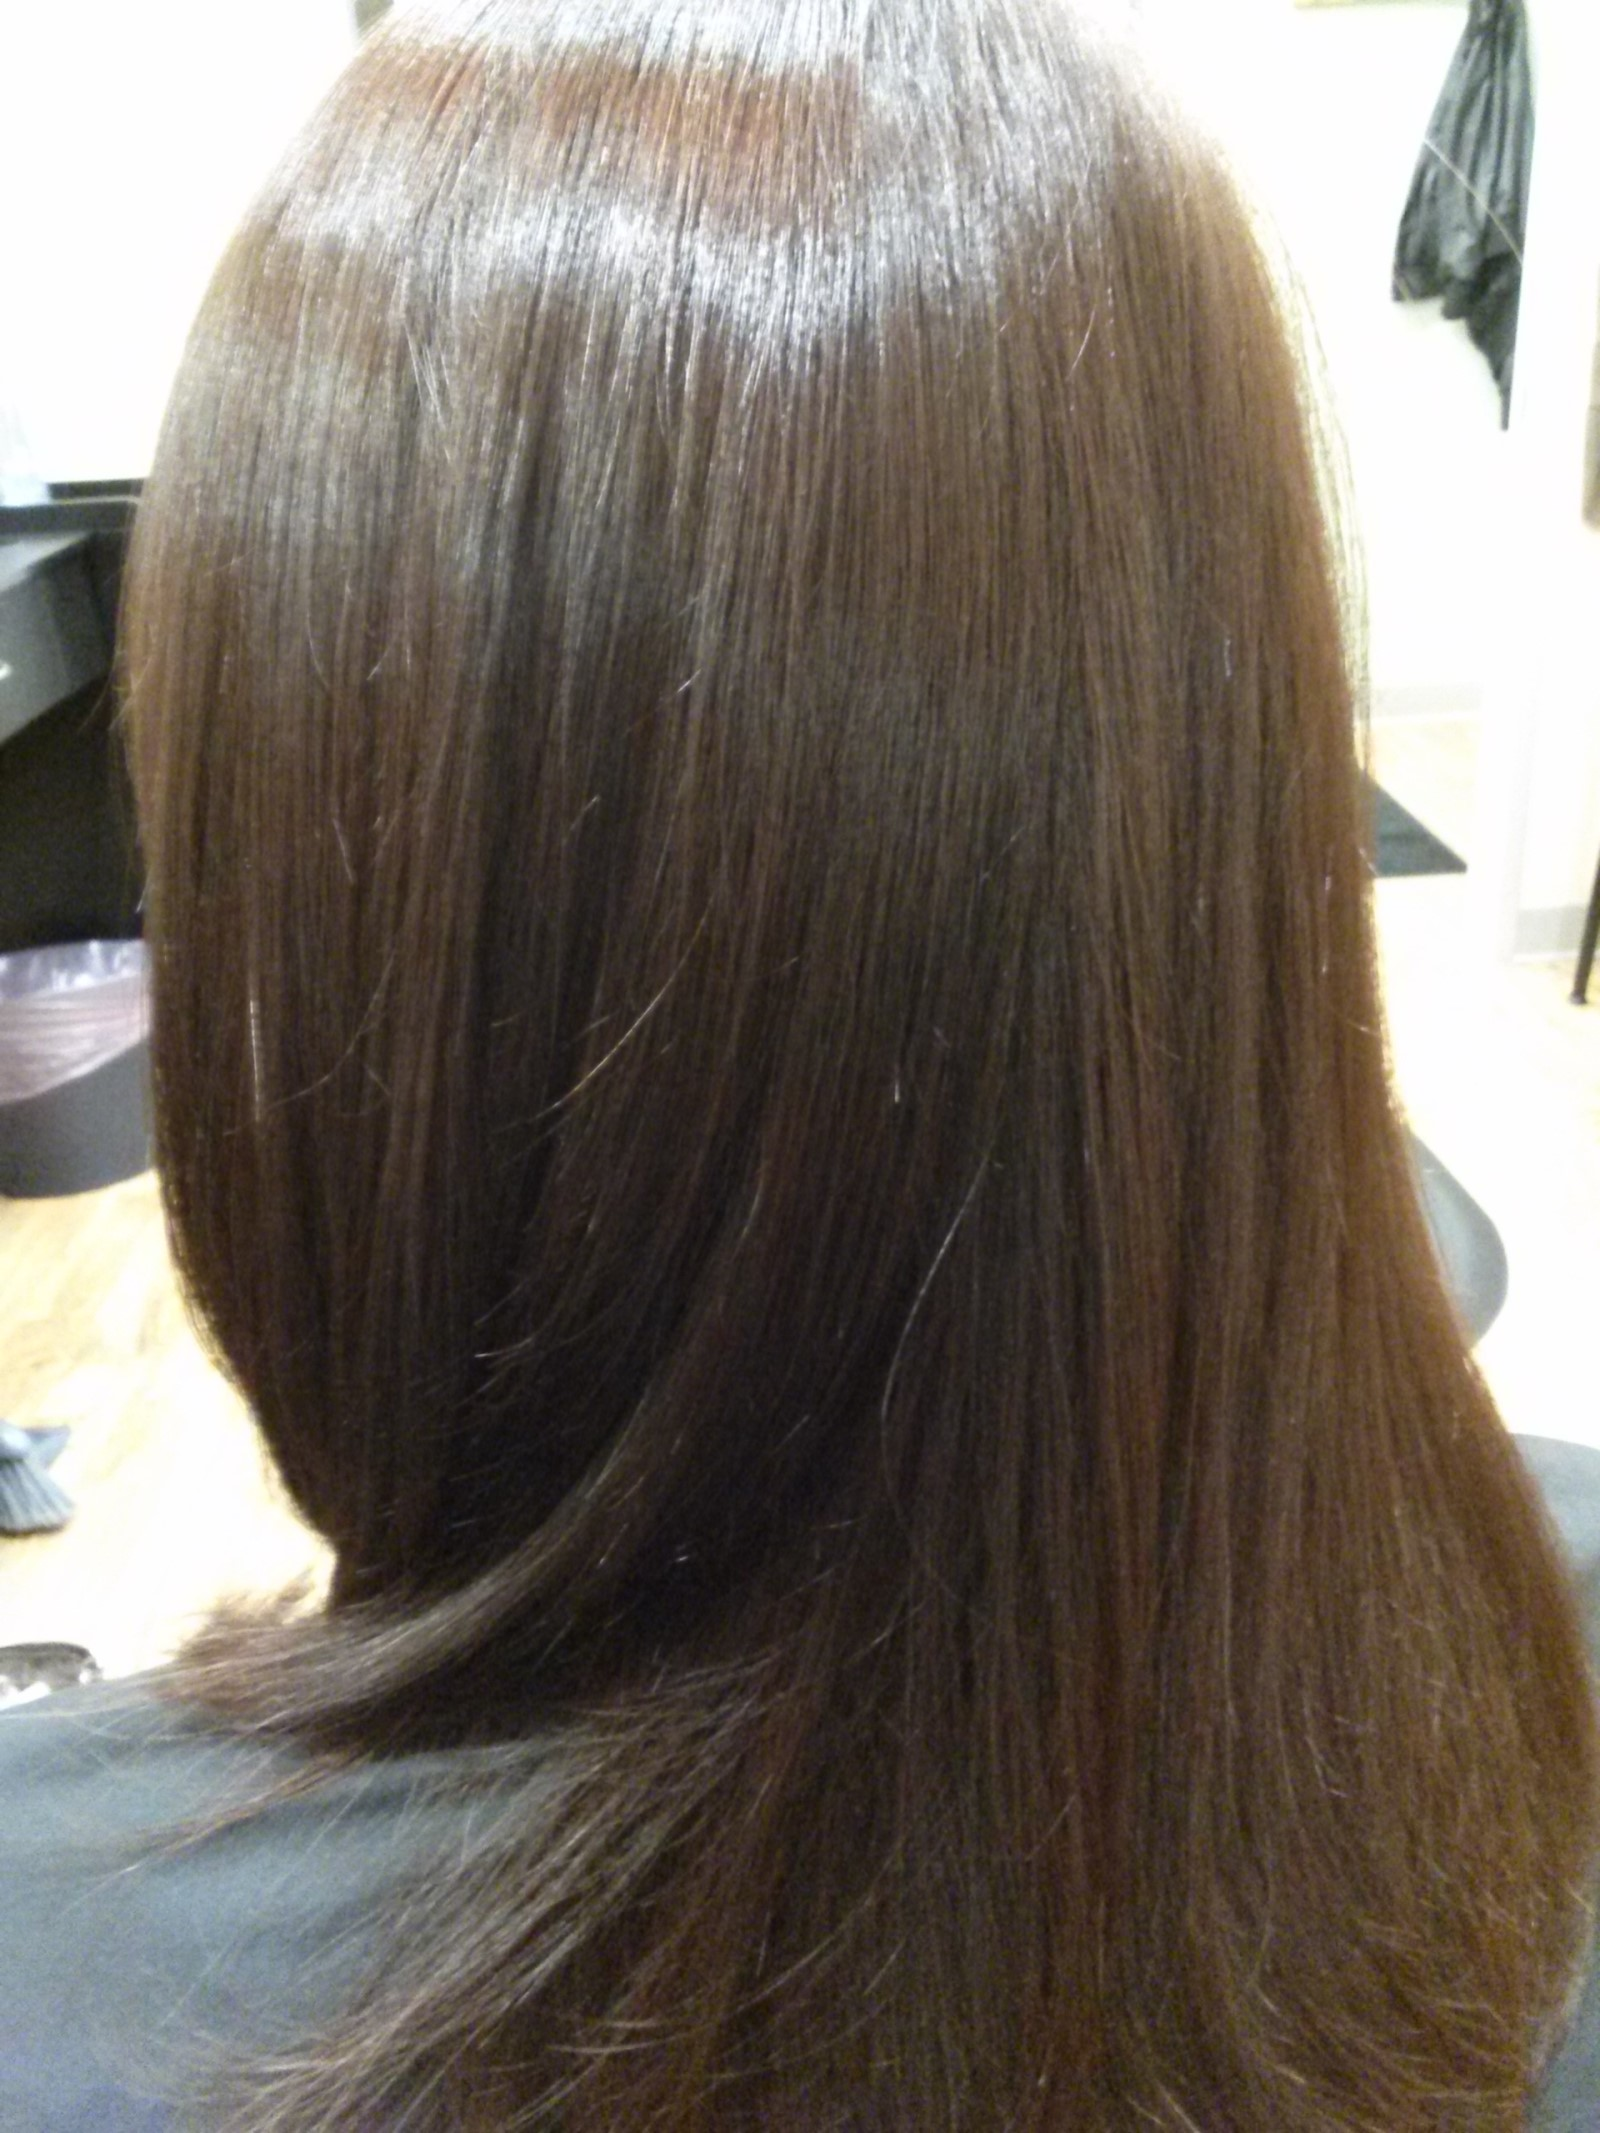 Mary Reed Cheveux At Salon Concepts At Salon Concepts Richfield